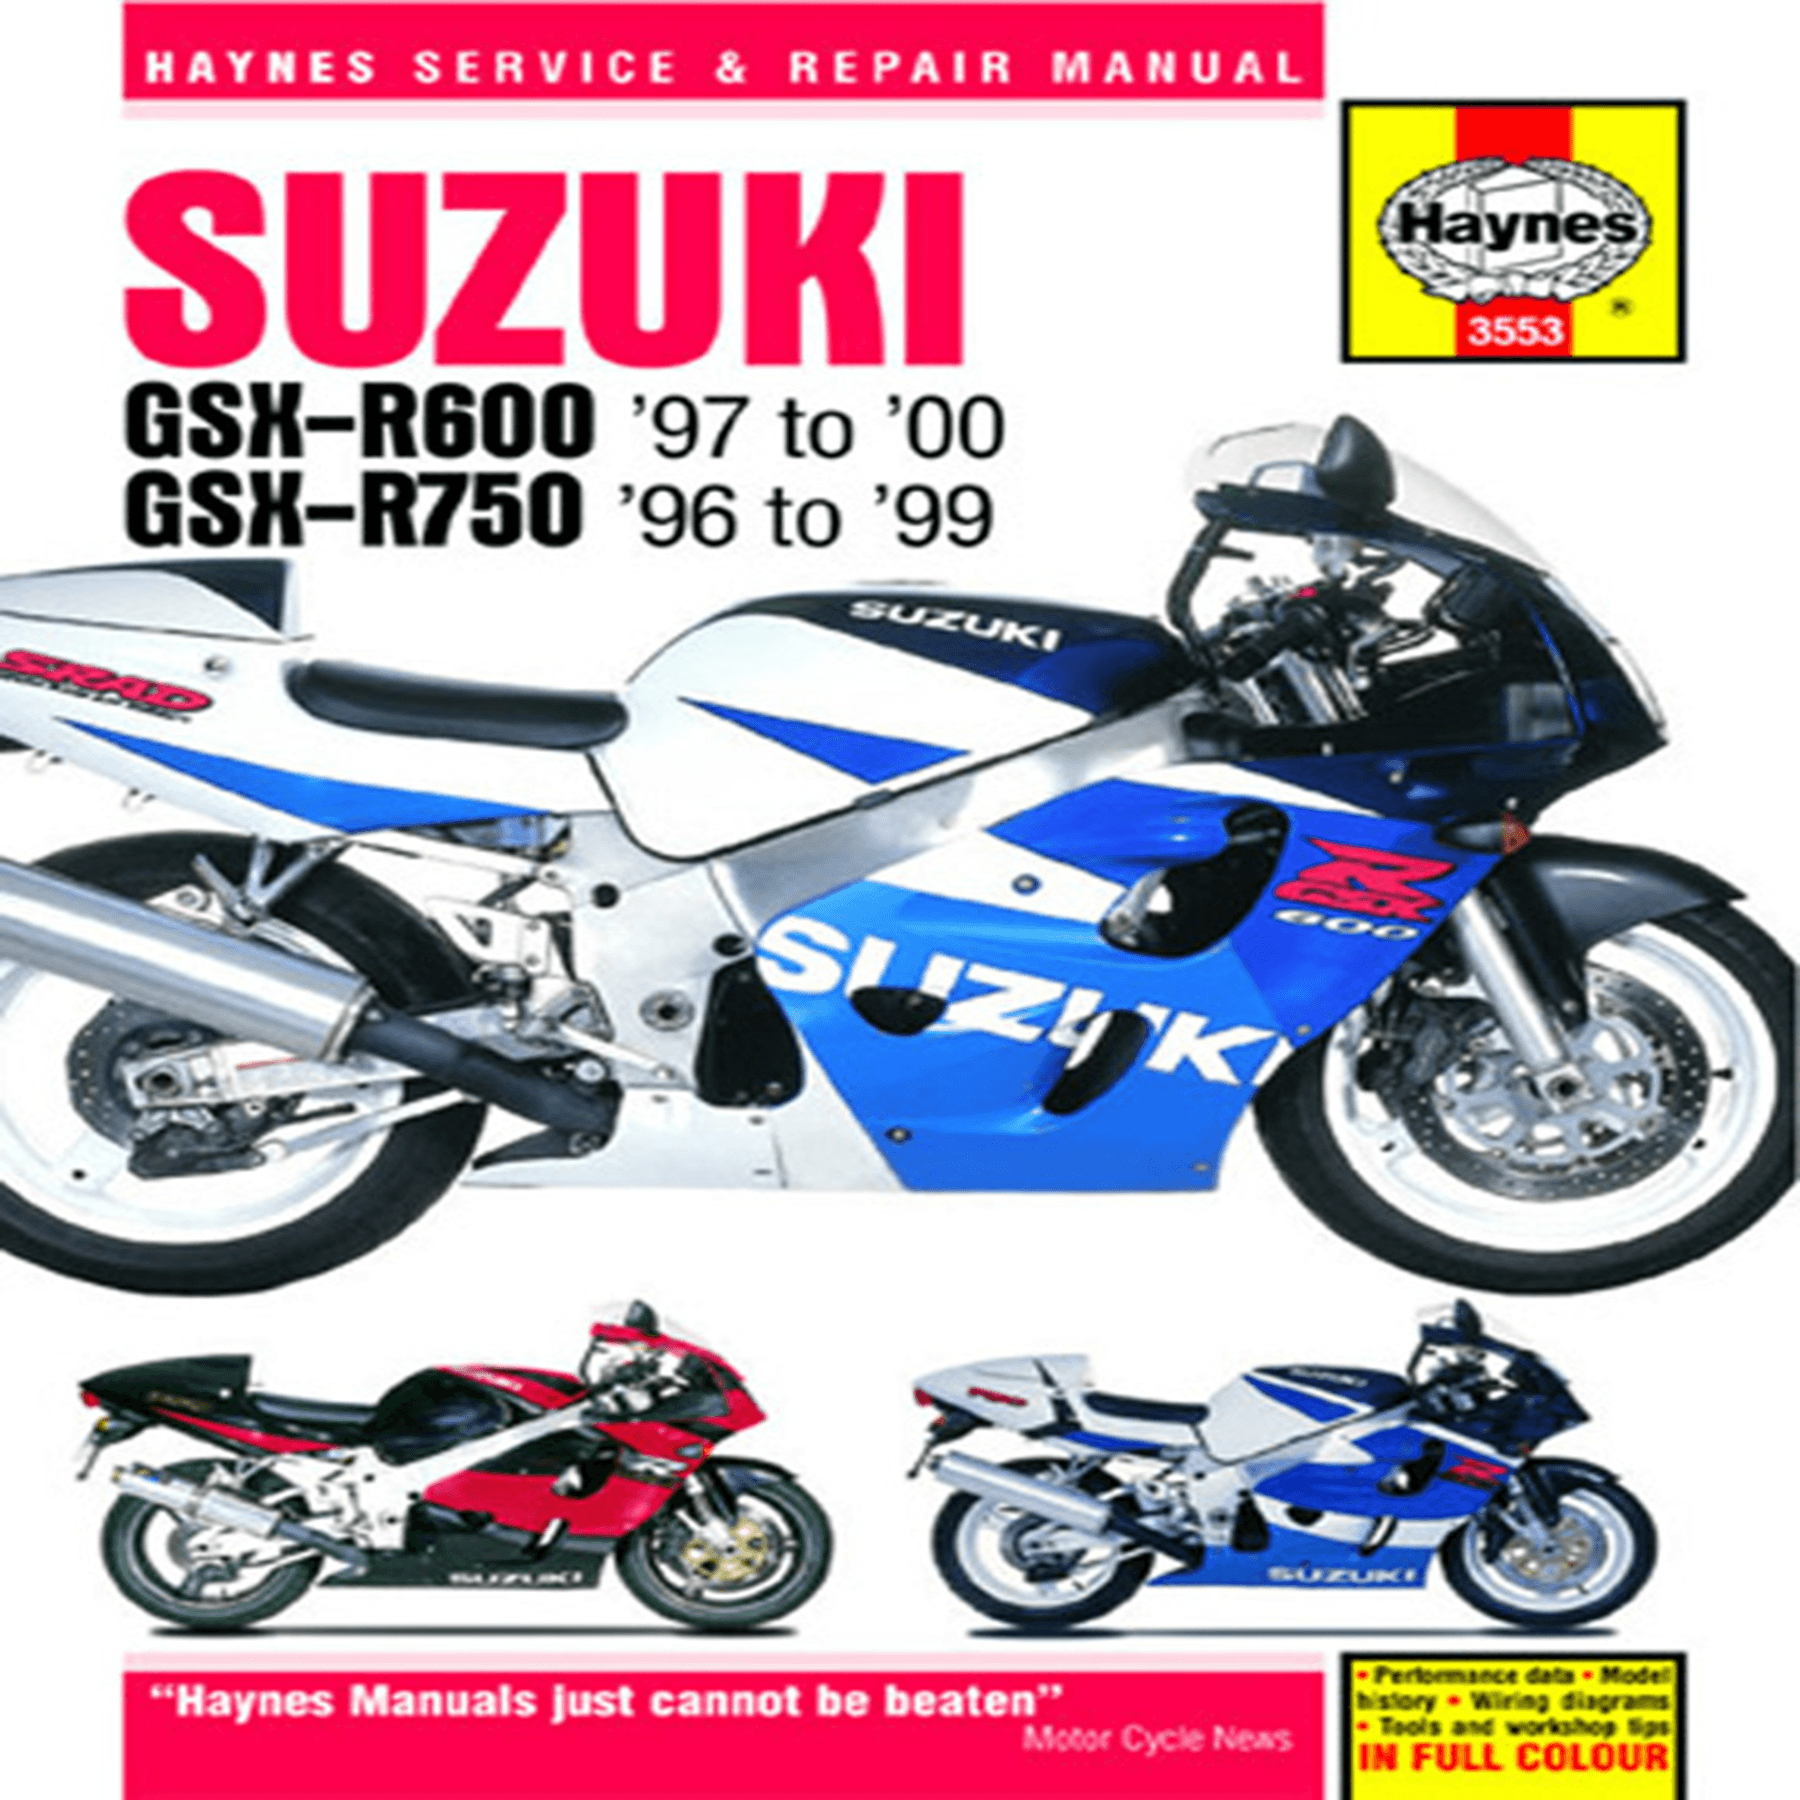 SUZUKI , HAYNES MANUAL